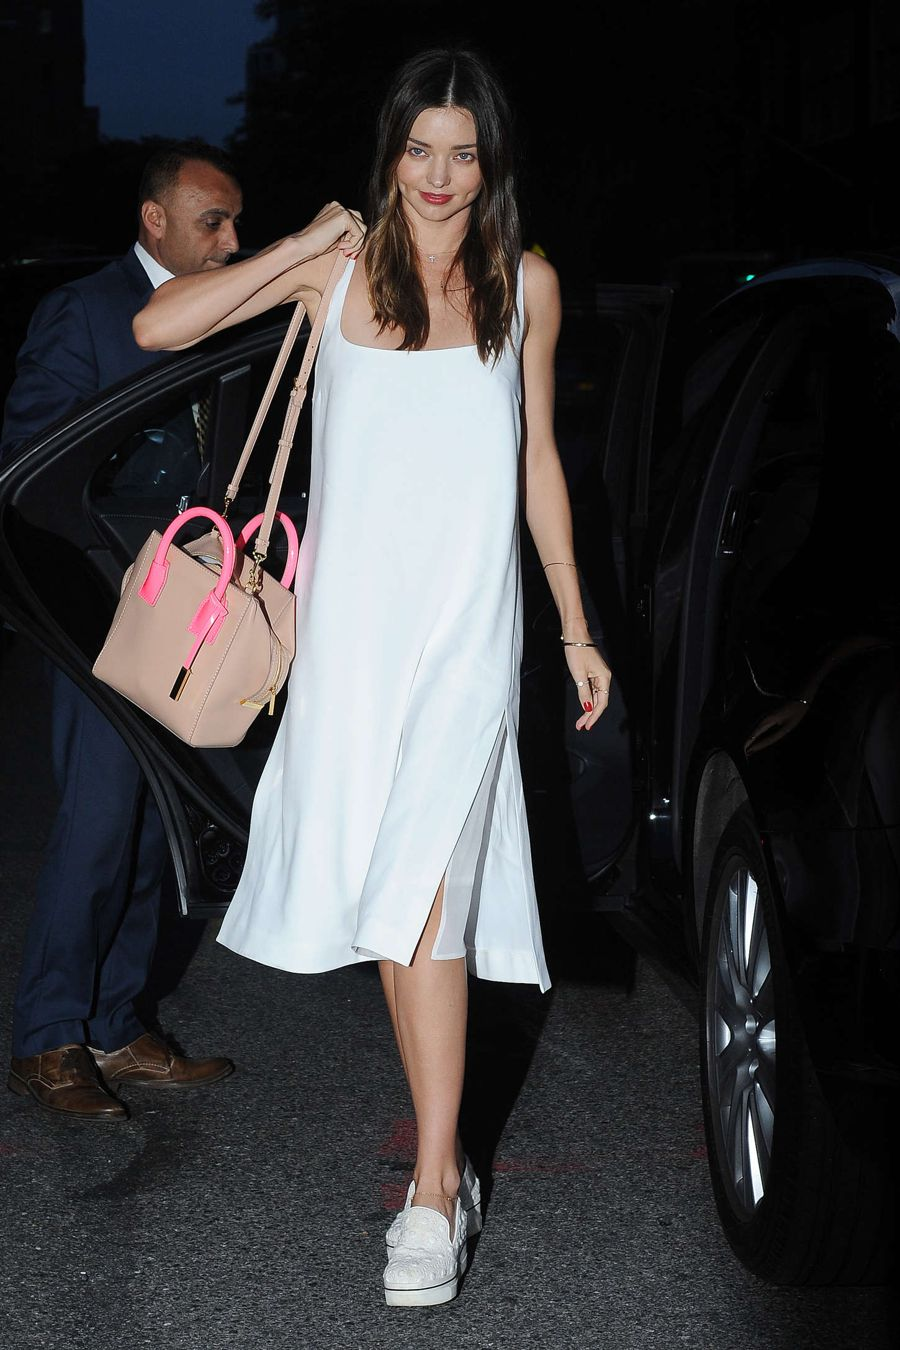 Miranda Kerr Comes Out in White Dress in Soho